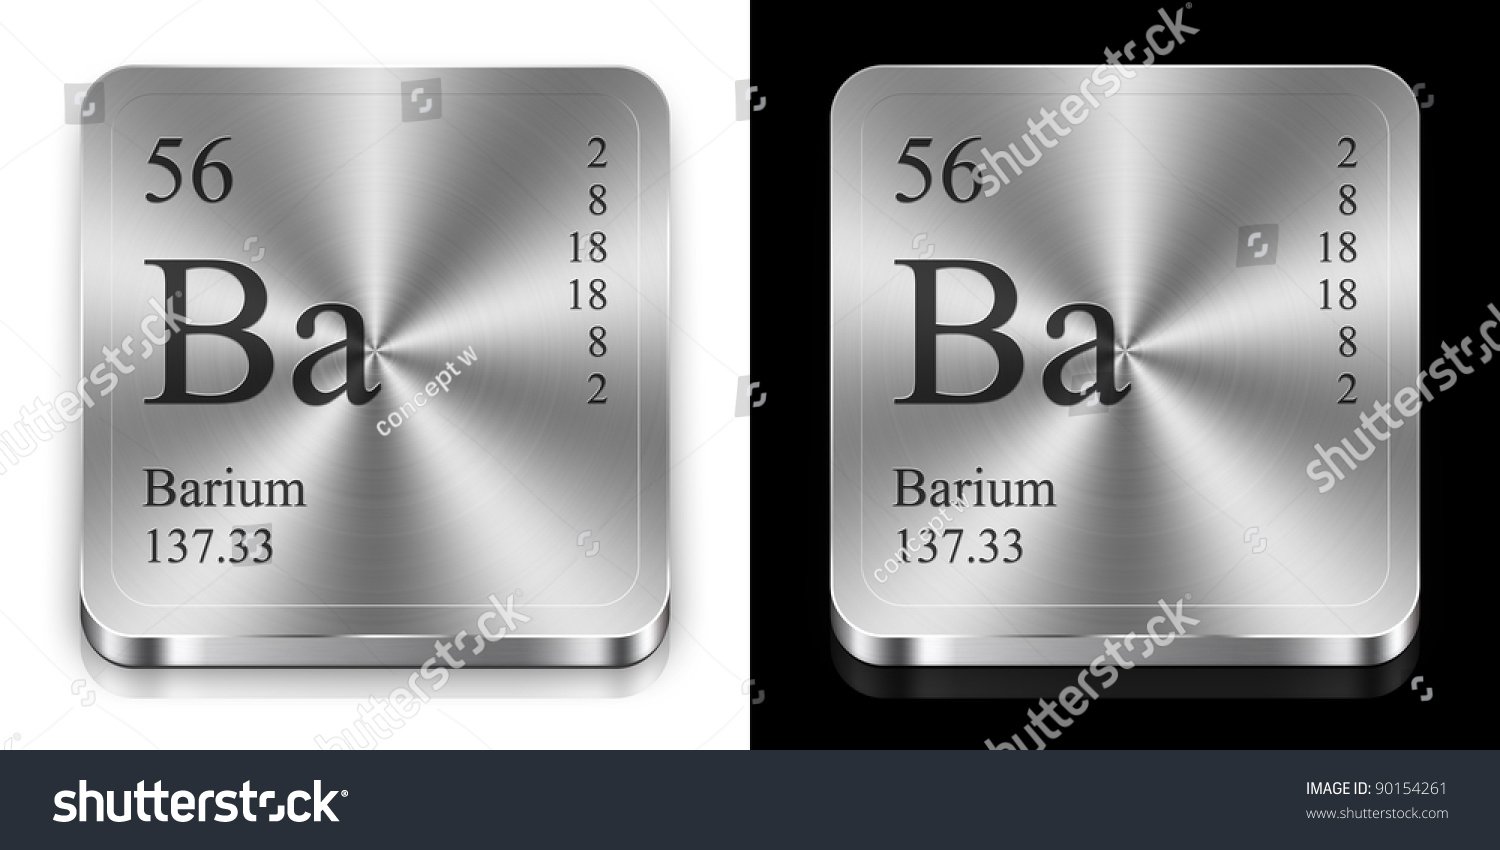 Ba element periodic table choice image periodic table images ba element periodic table image collections periodic table images periodic table barium images periodic table images gamestrikefo Image collections